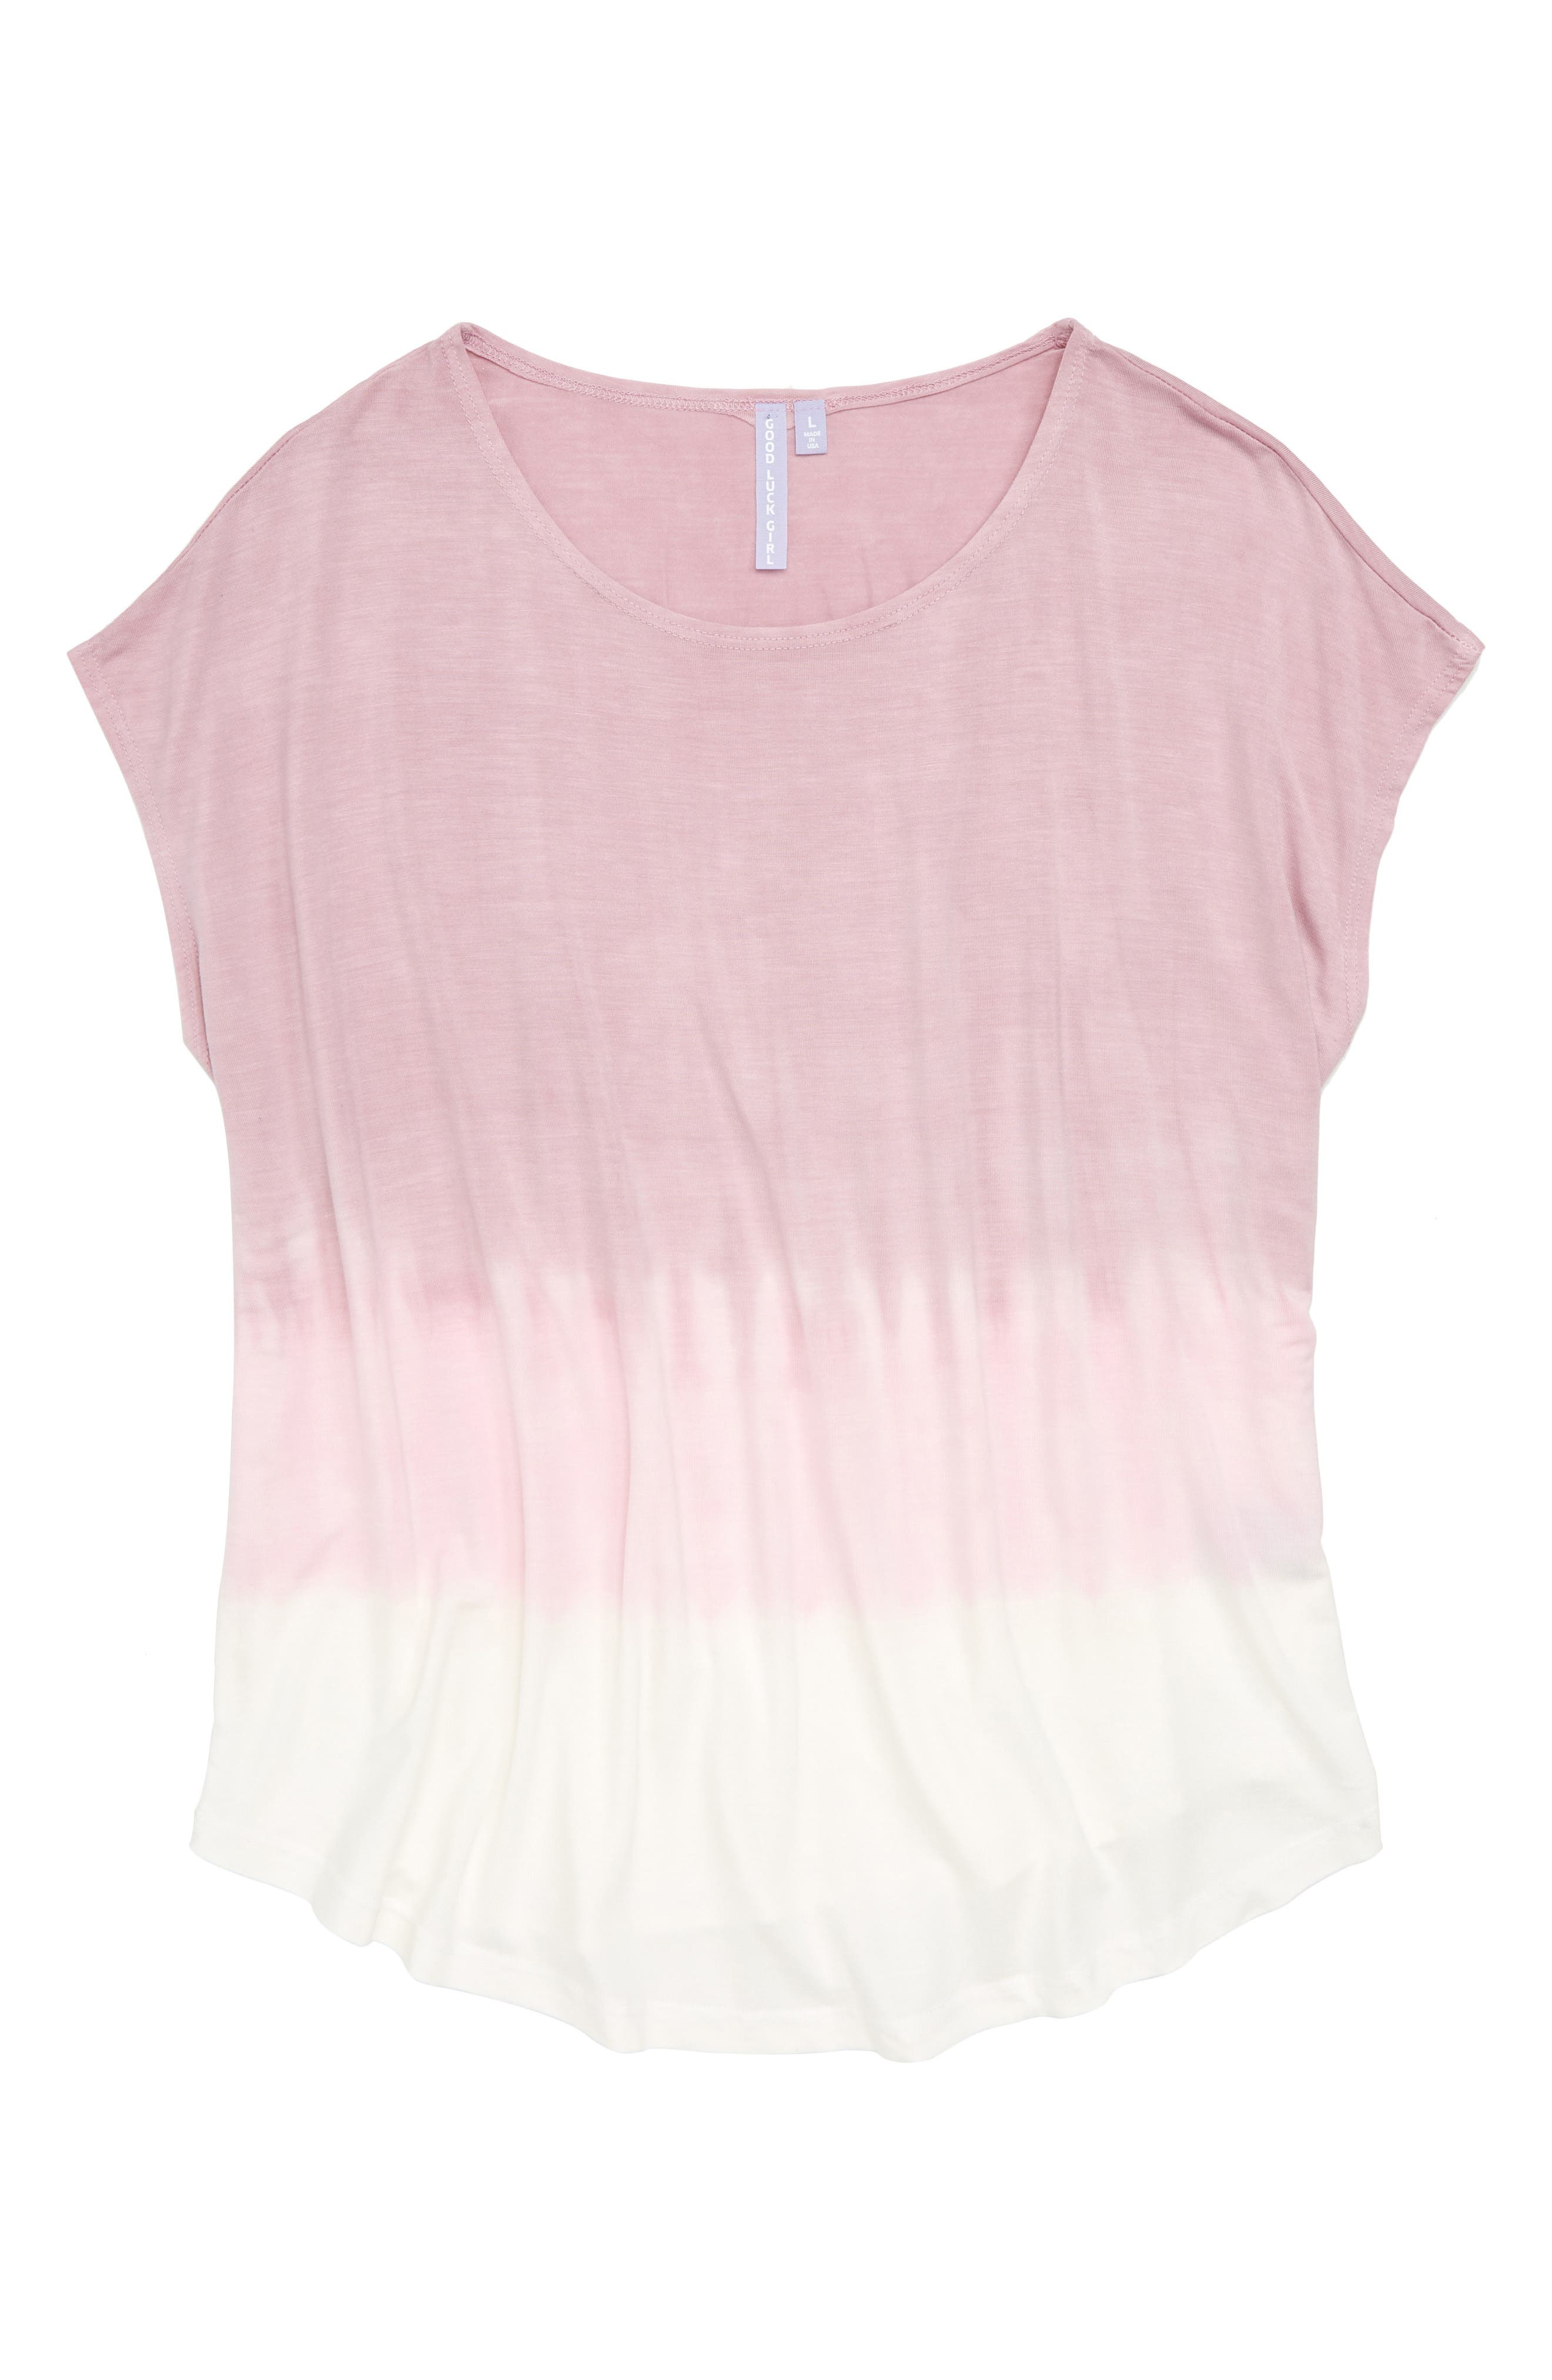 Ombré Sleeveless Tee,                             Main thumbnail 1, color,                             530